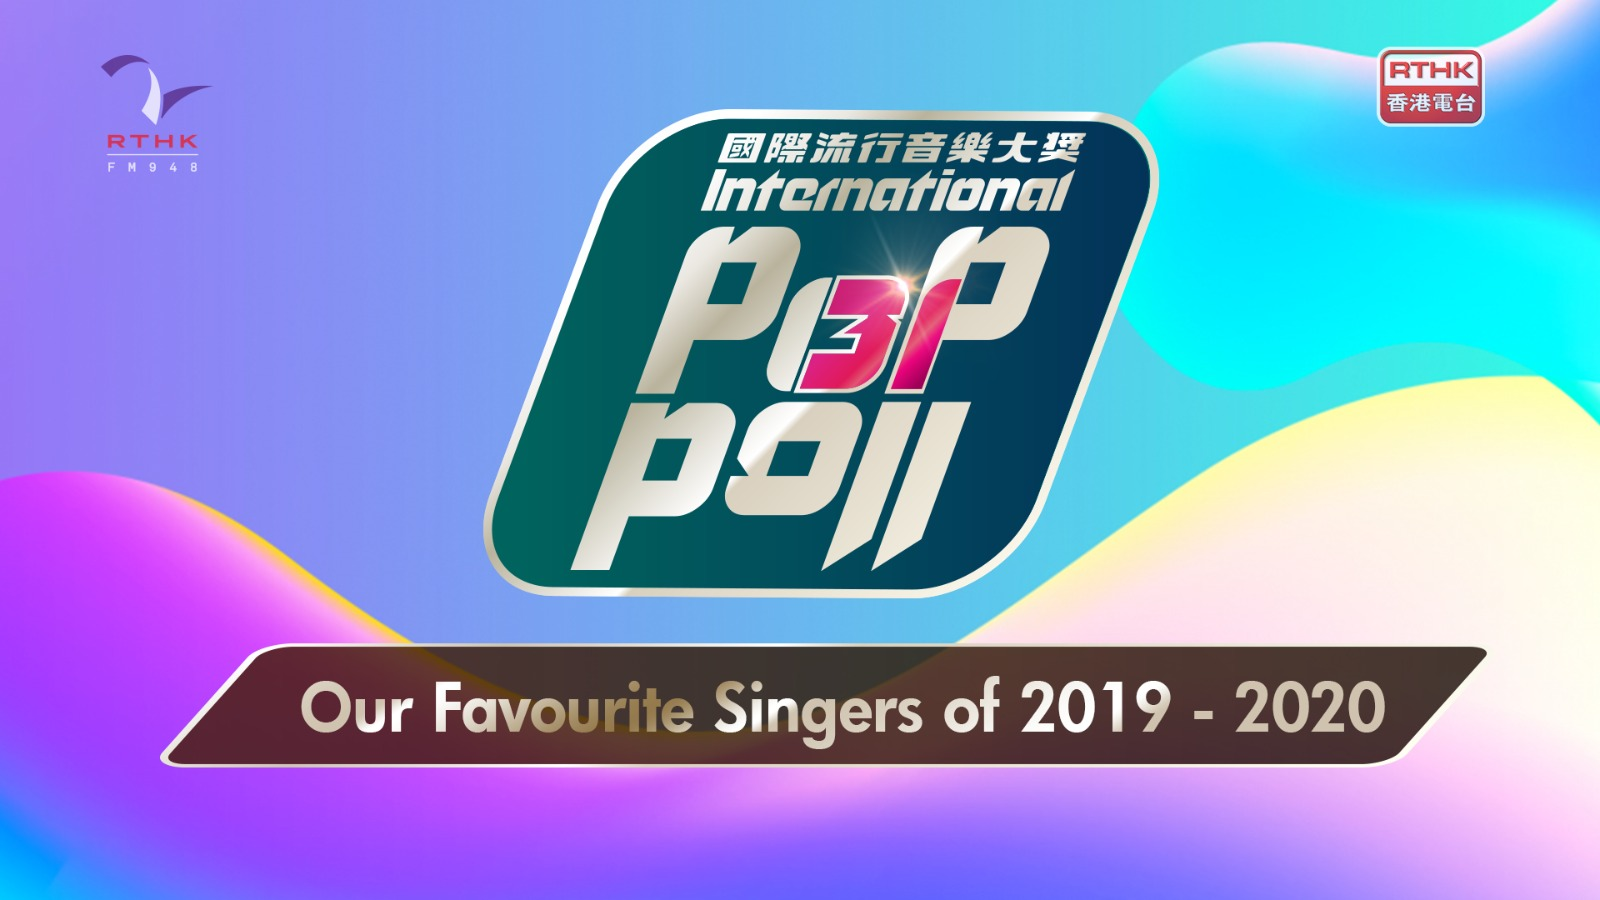 Our Favorite Singers of 2019-2020